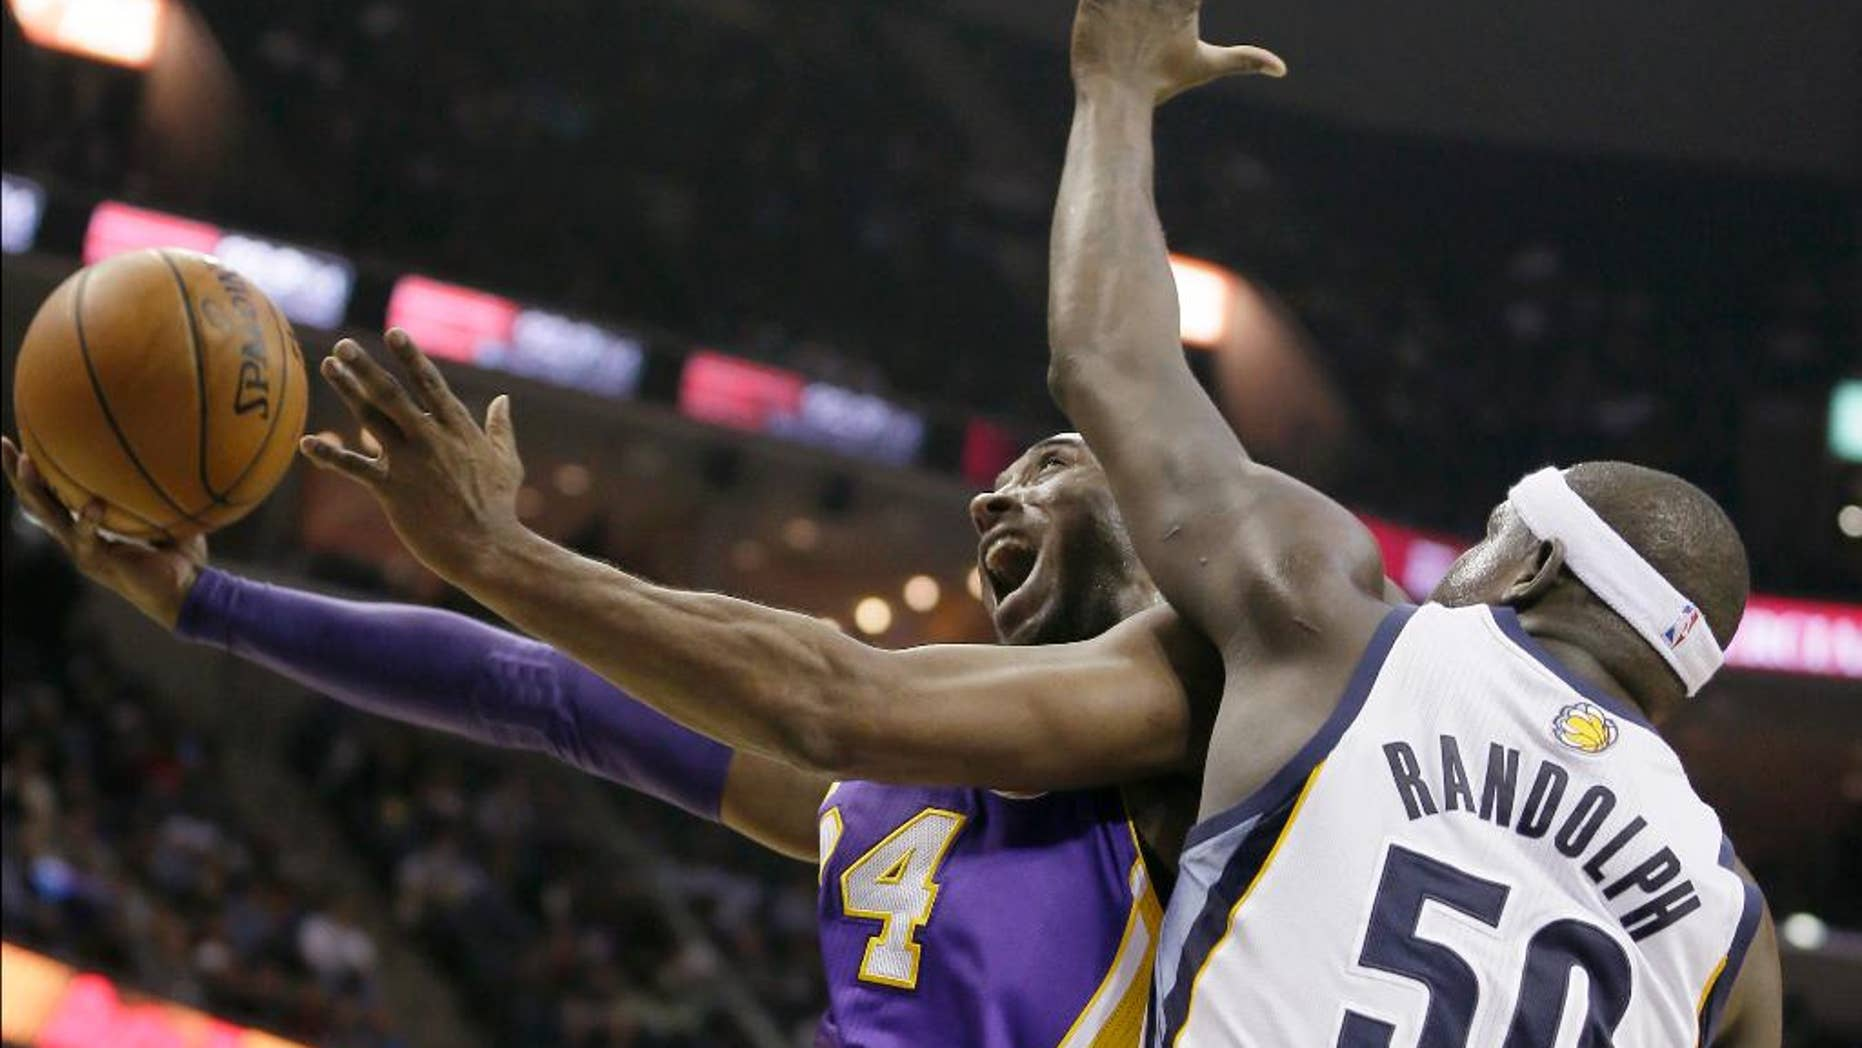 FILE - In this Dec. 17, 2013, file photo, Los Angeles Lakers' Kobe Bryant goes to the basket in front of Memphis Grizzlies' Zach Randolph (50) during the first half of an NBA basketball game in Memphis, Tenn. Bryant's 19th season gets started Tuesday, Oct. 28, 2014, when the Lakers open at home against the Houston Rockets. What he has left in the tank after two injury-filled years might be one of the biggest questions heading into the season, with the Lakers already being widely written off in the loaded Western Conference and Bryant hardly expected to regain the elite form that he displayed for so long. (AP Photo/Danny Johnston, File)